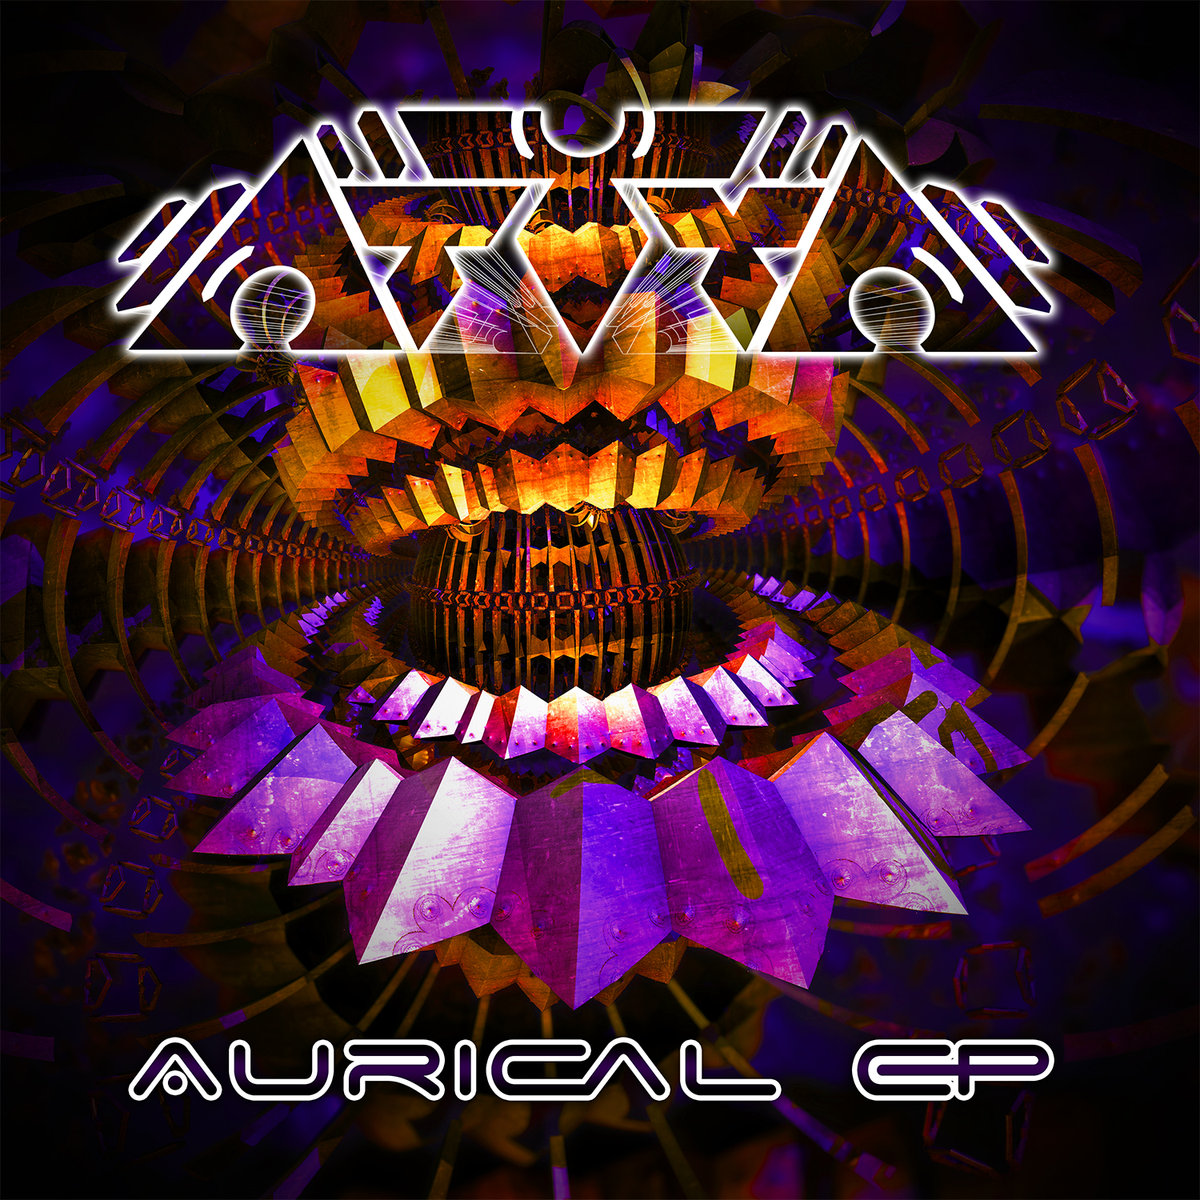 AtYyA - Movement @ 'Aurical' album (432hz, electronic)